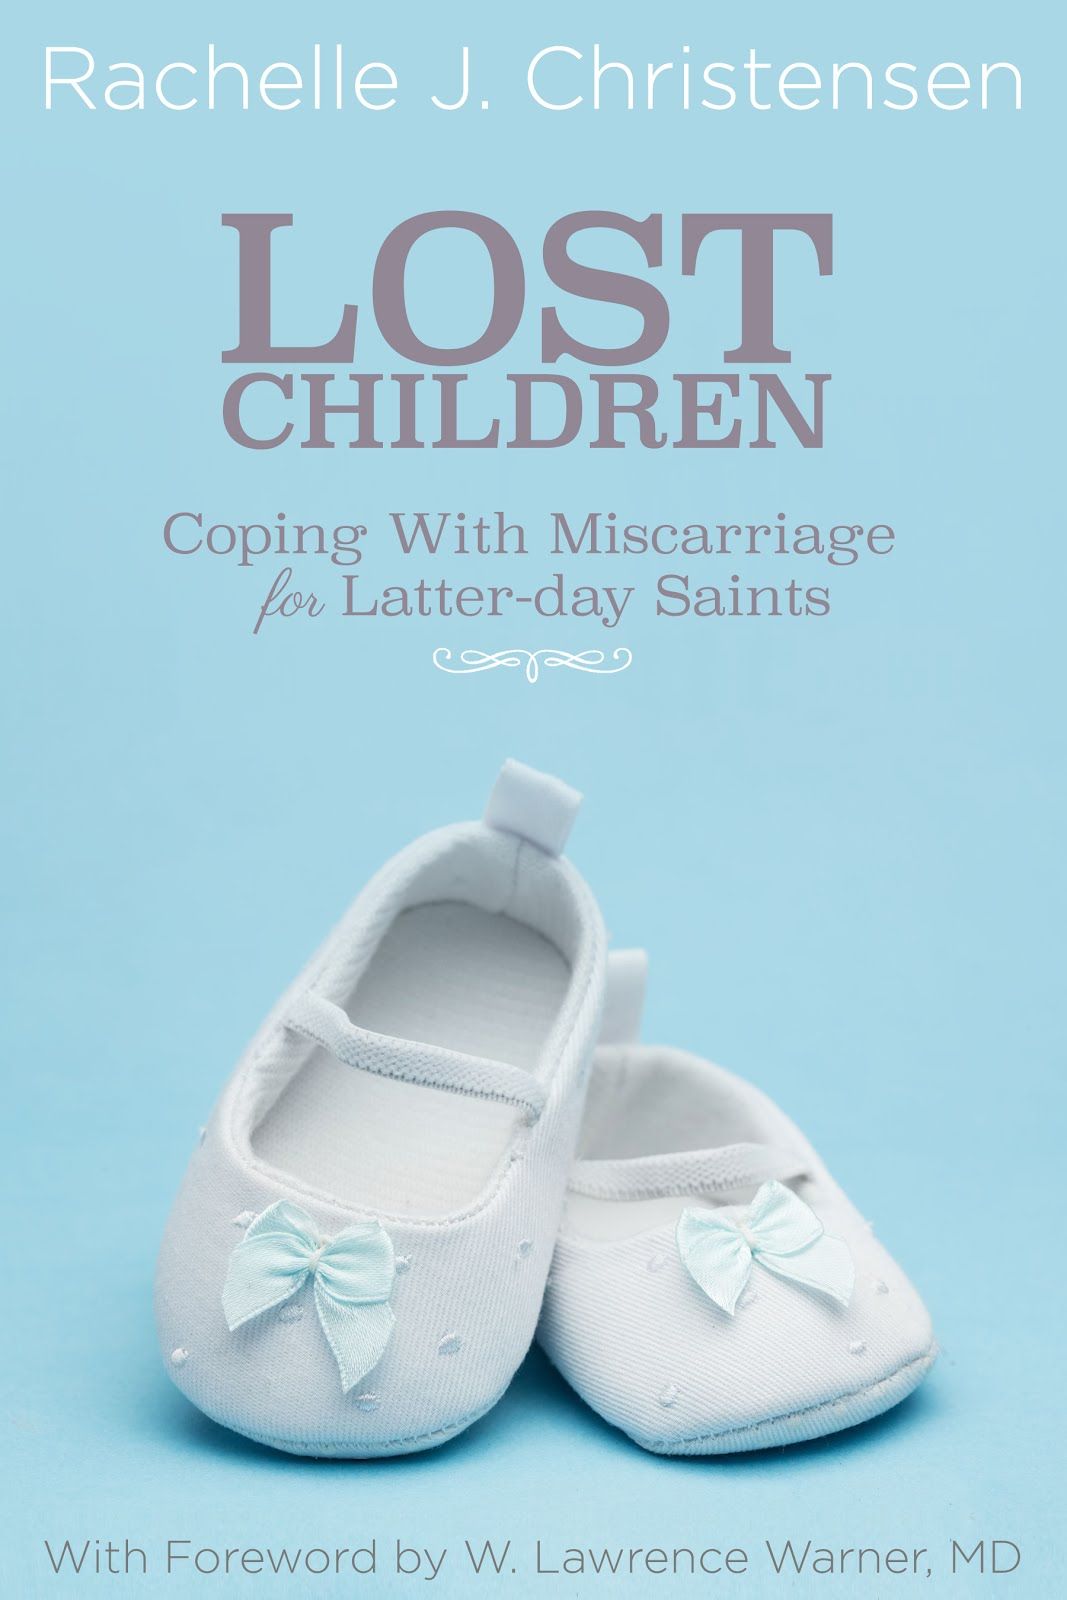 My Nonfiction book on Miscarriage